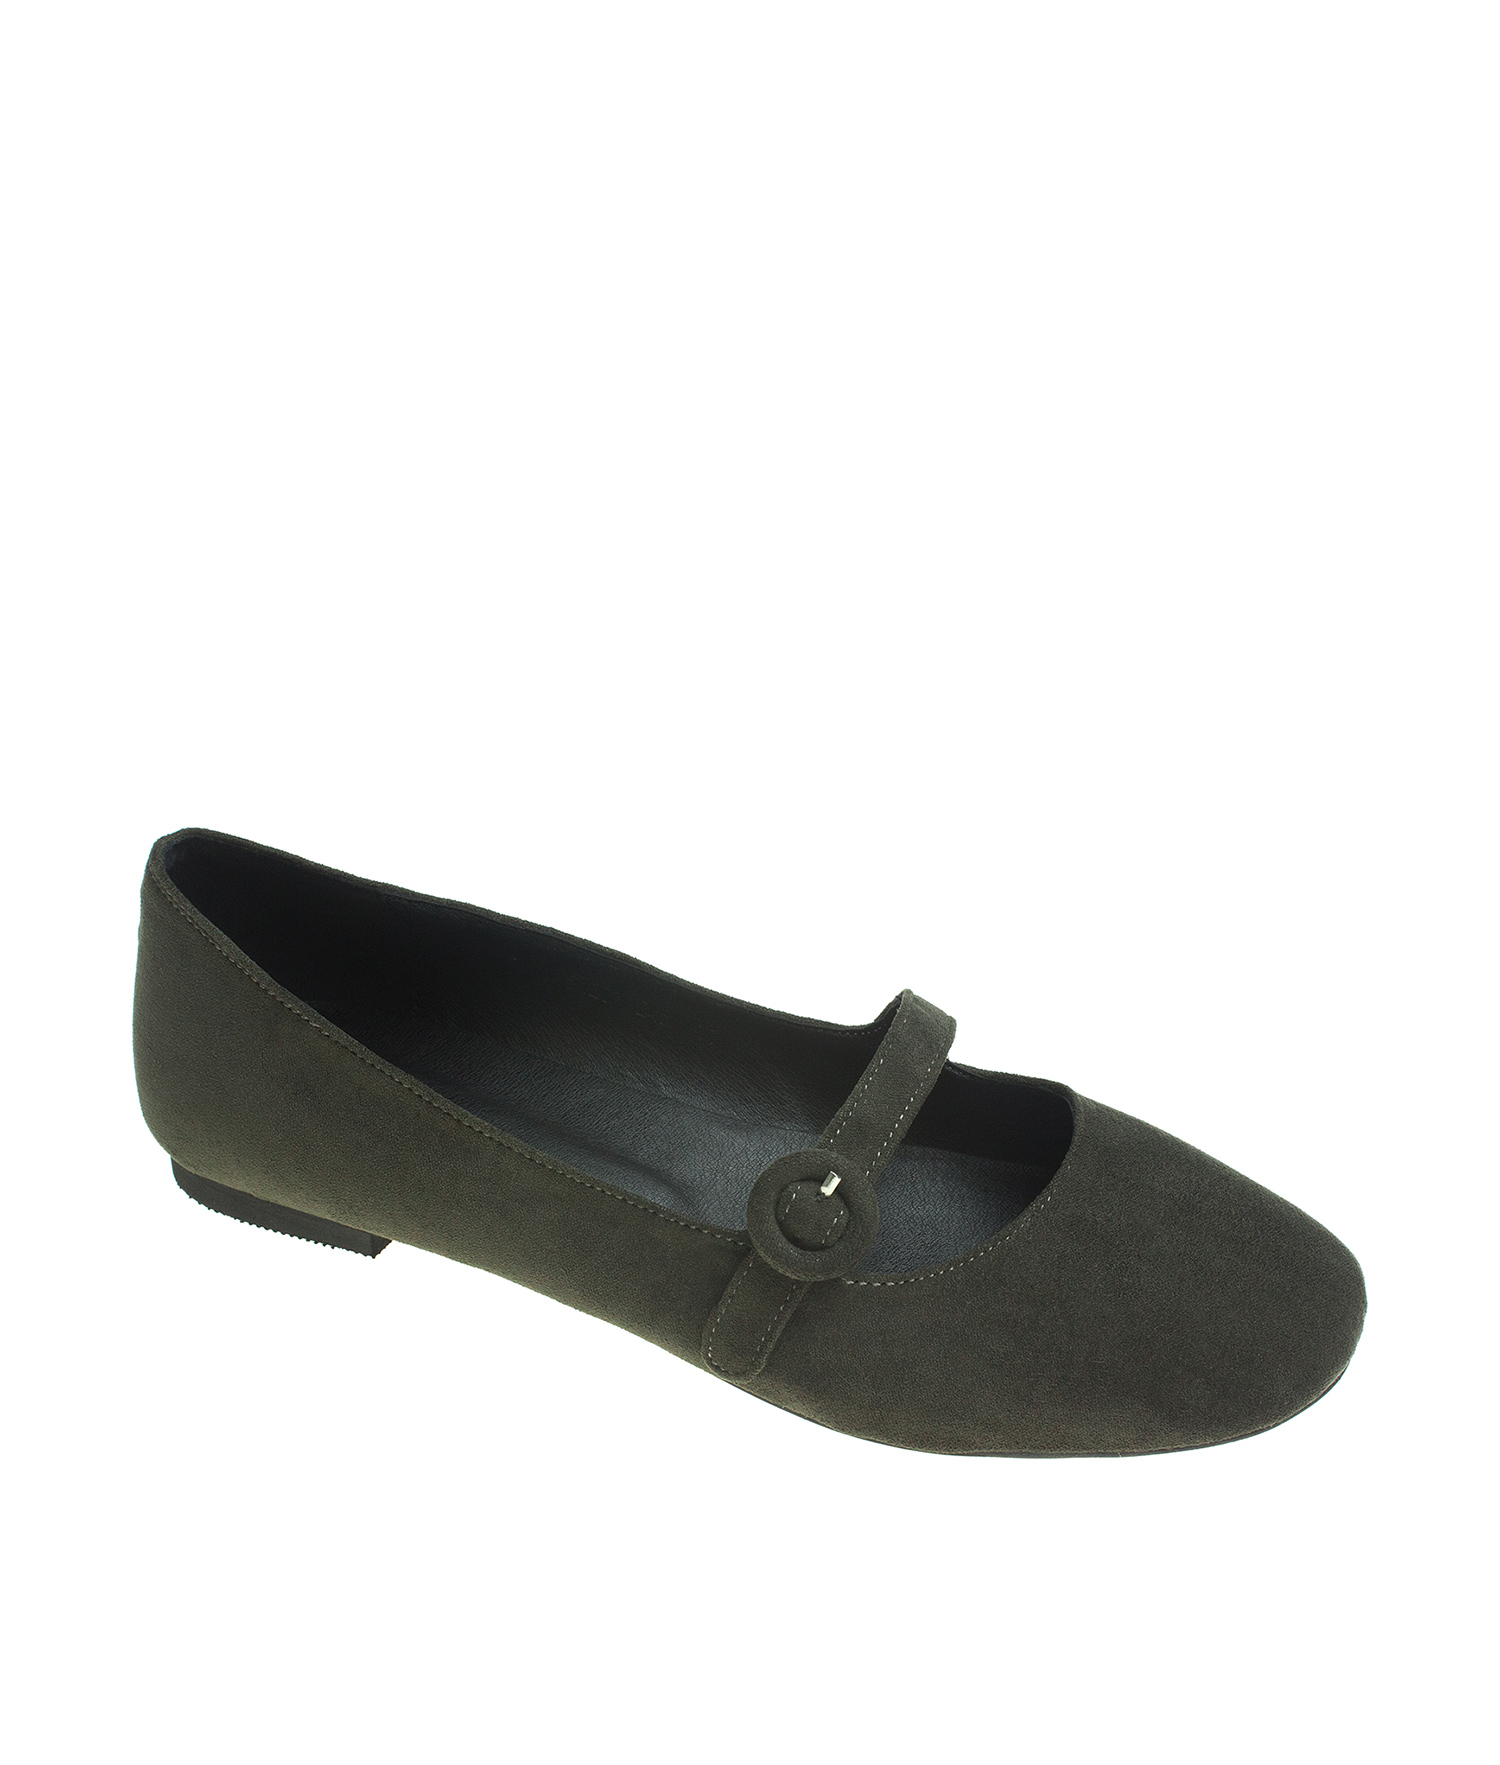 AnnaKastle Womens Suede Mary Jane Ballerina Flats KhakiGreen